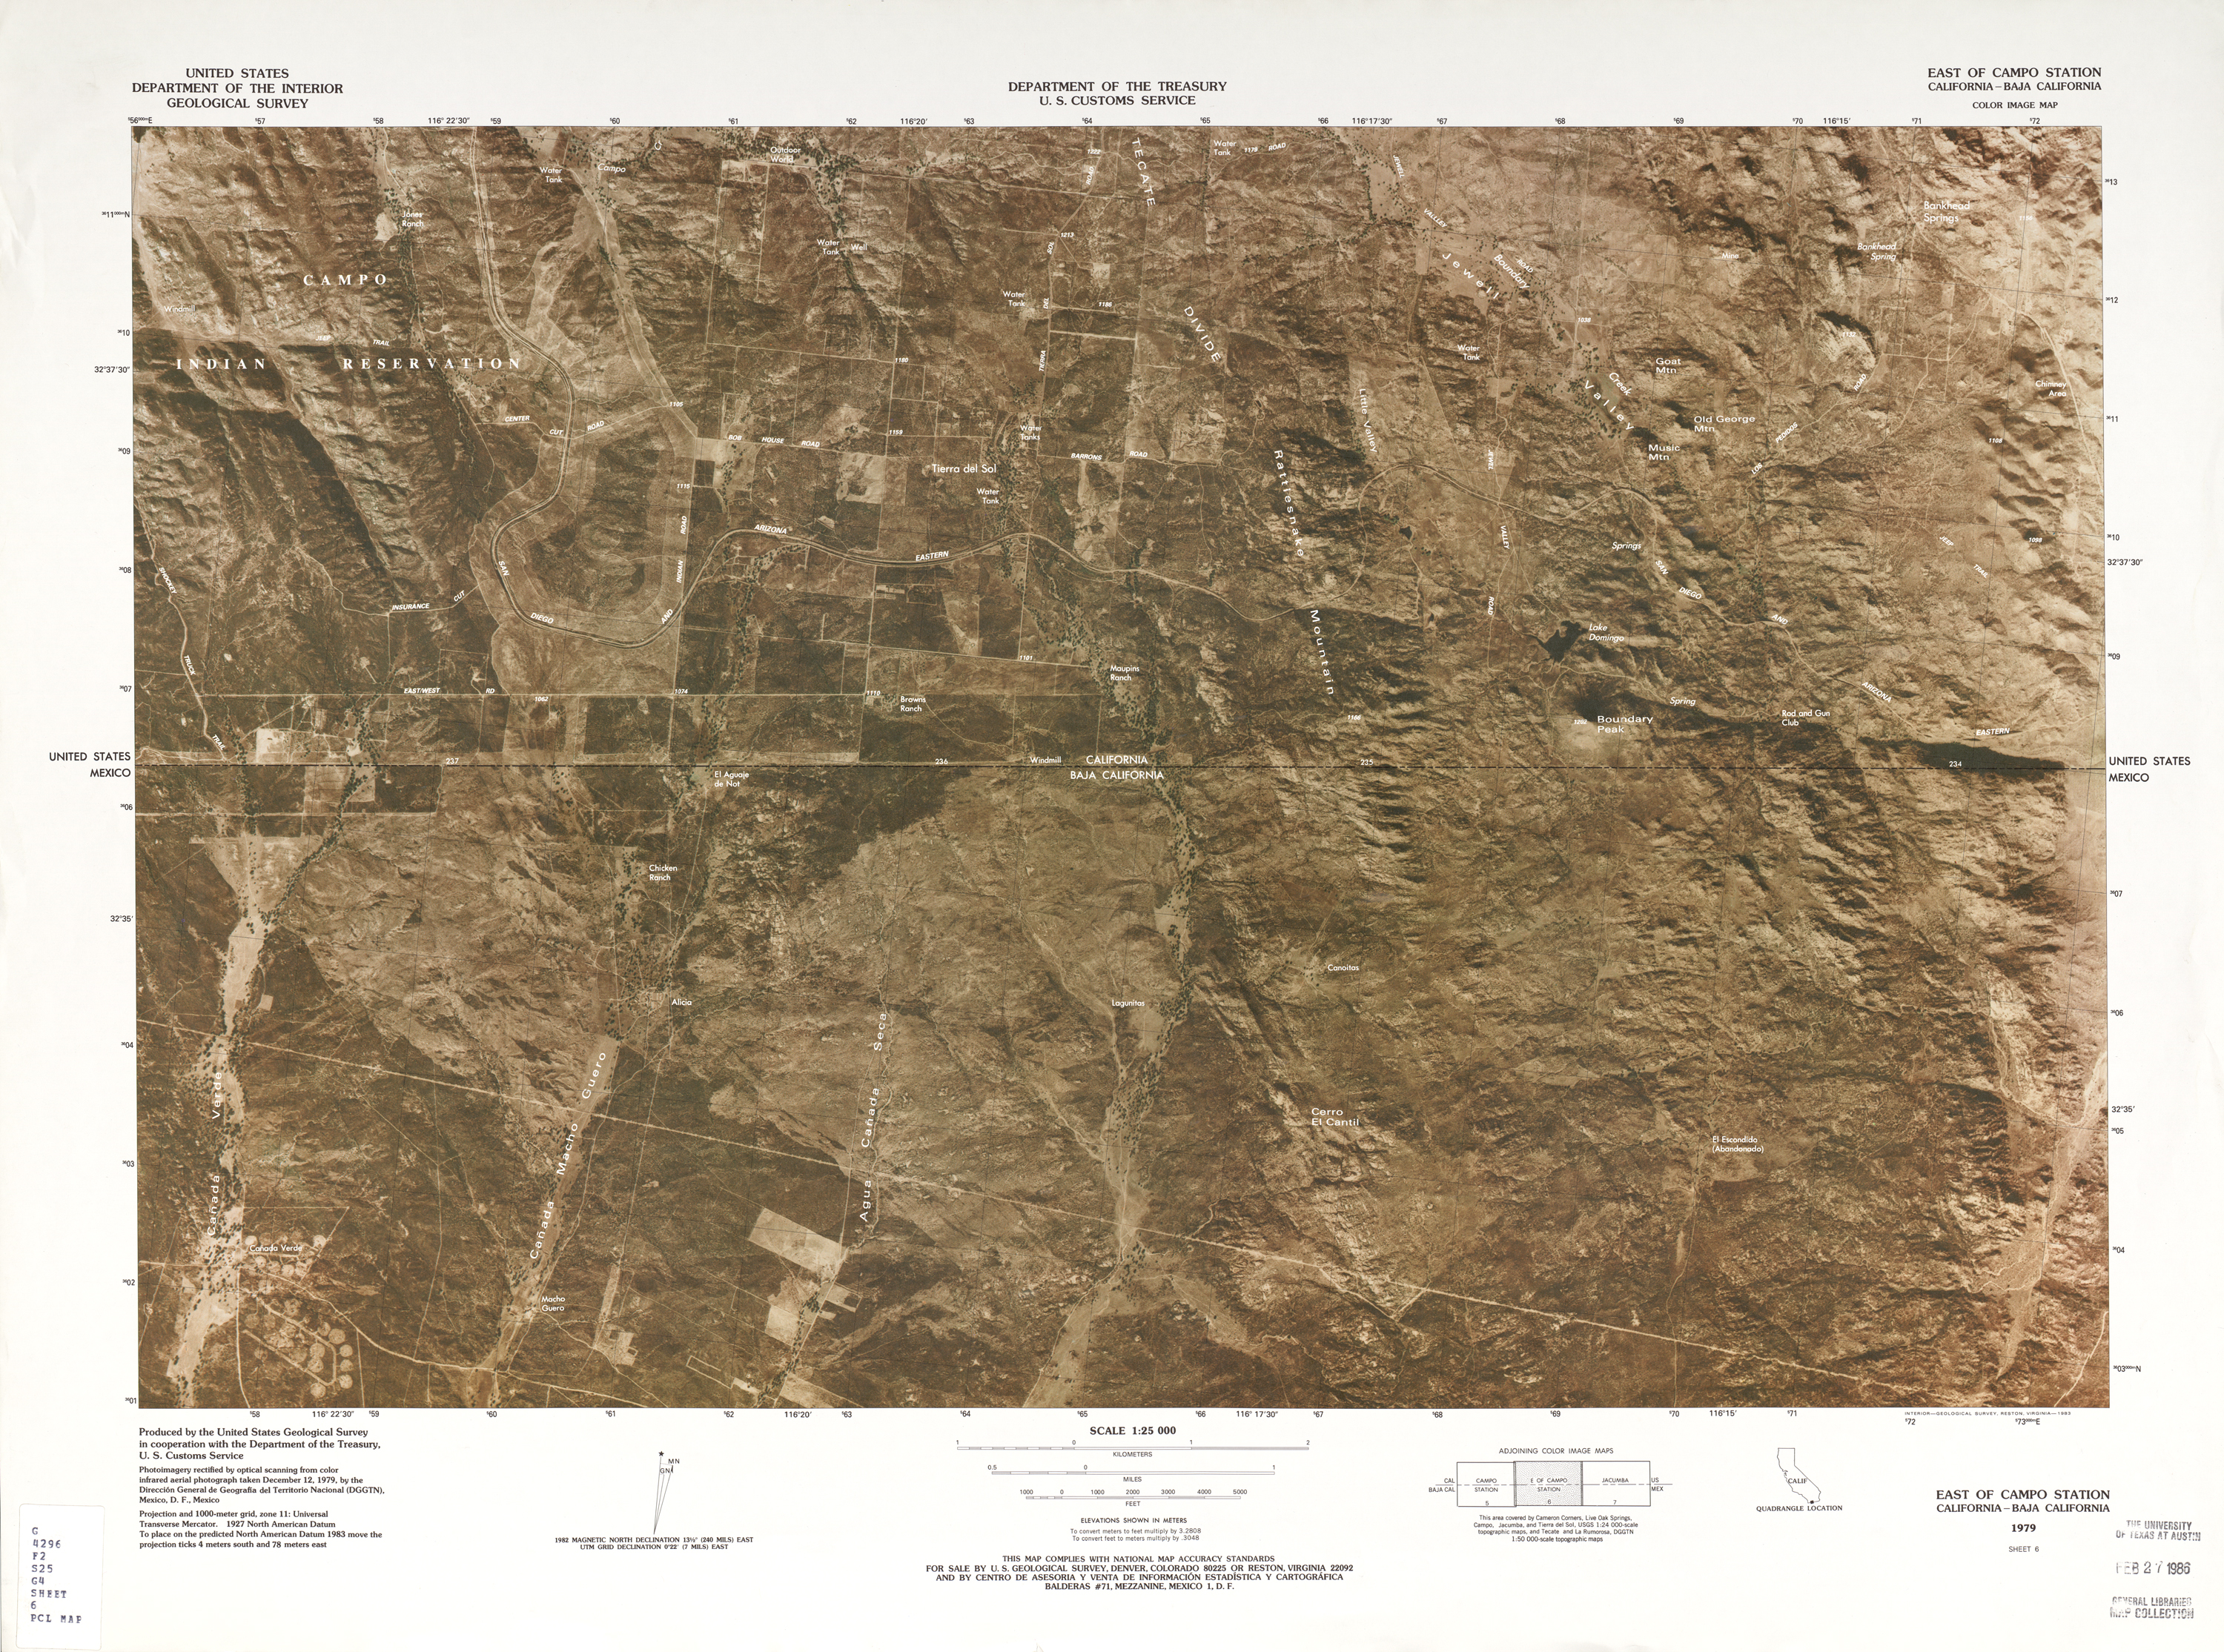 Mexico United States Border Perry Castaneda Map Collection Ut